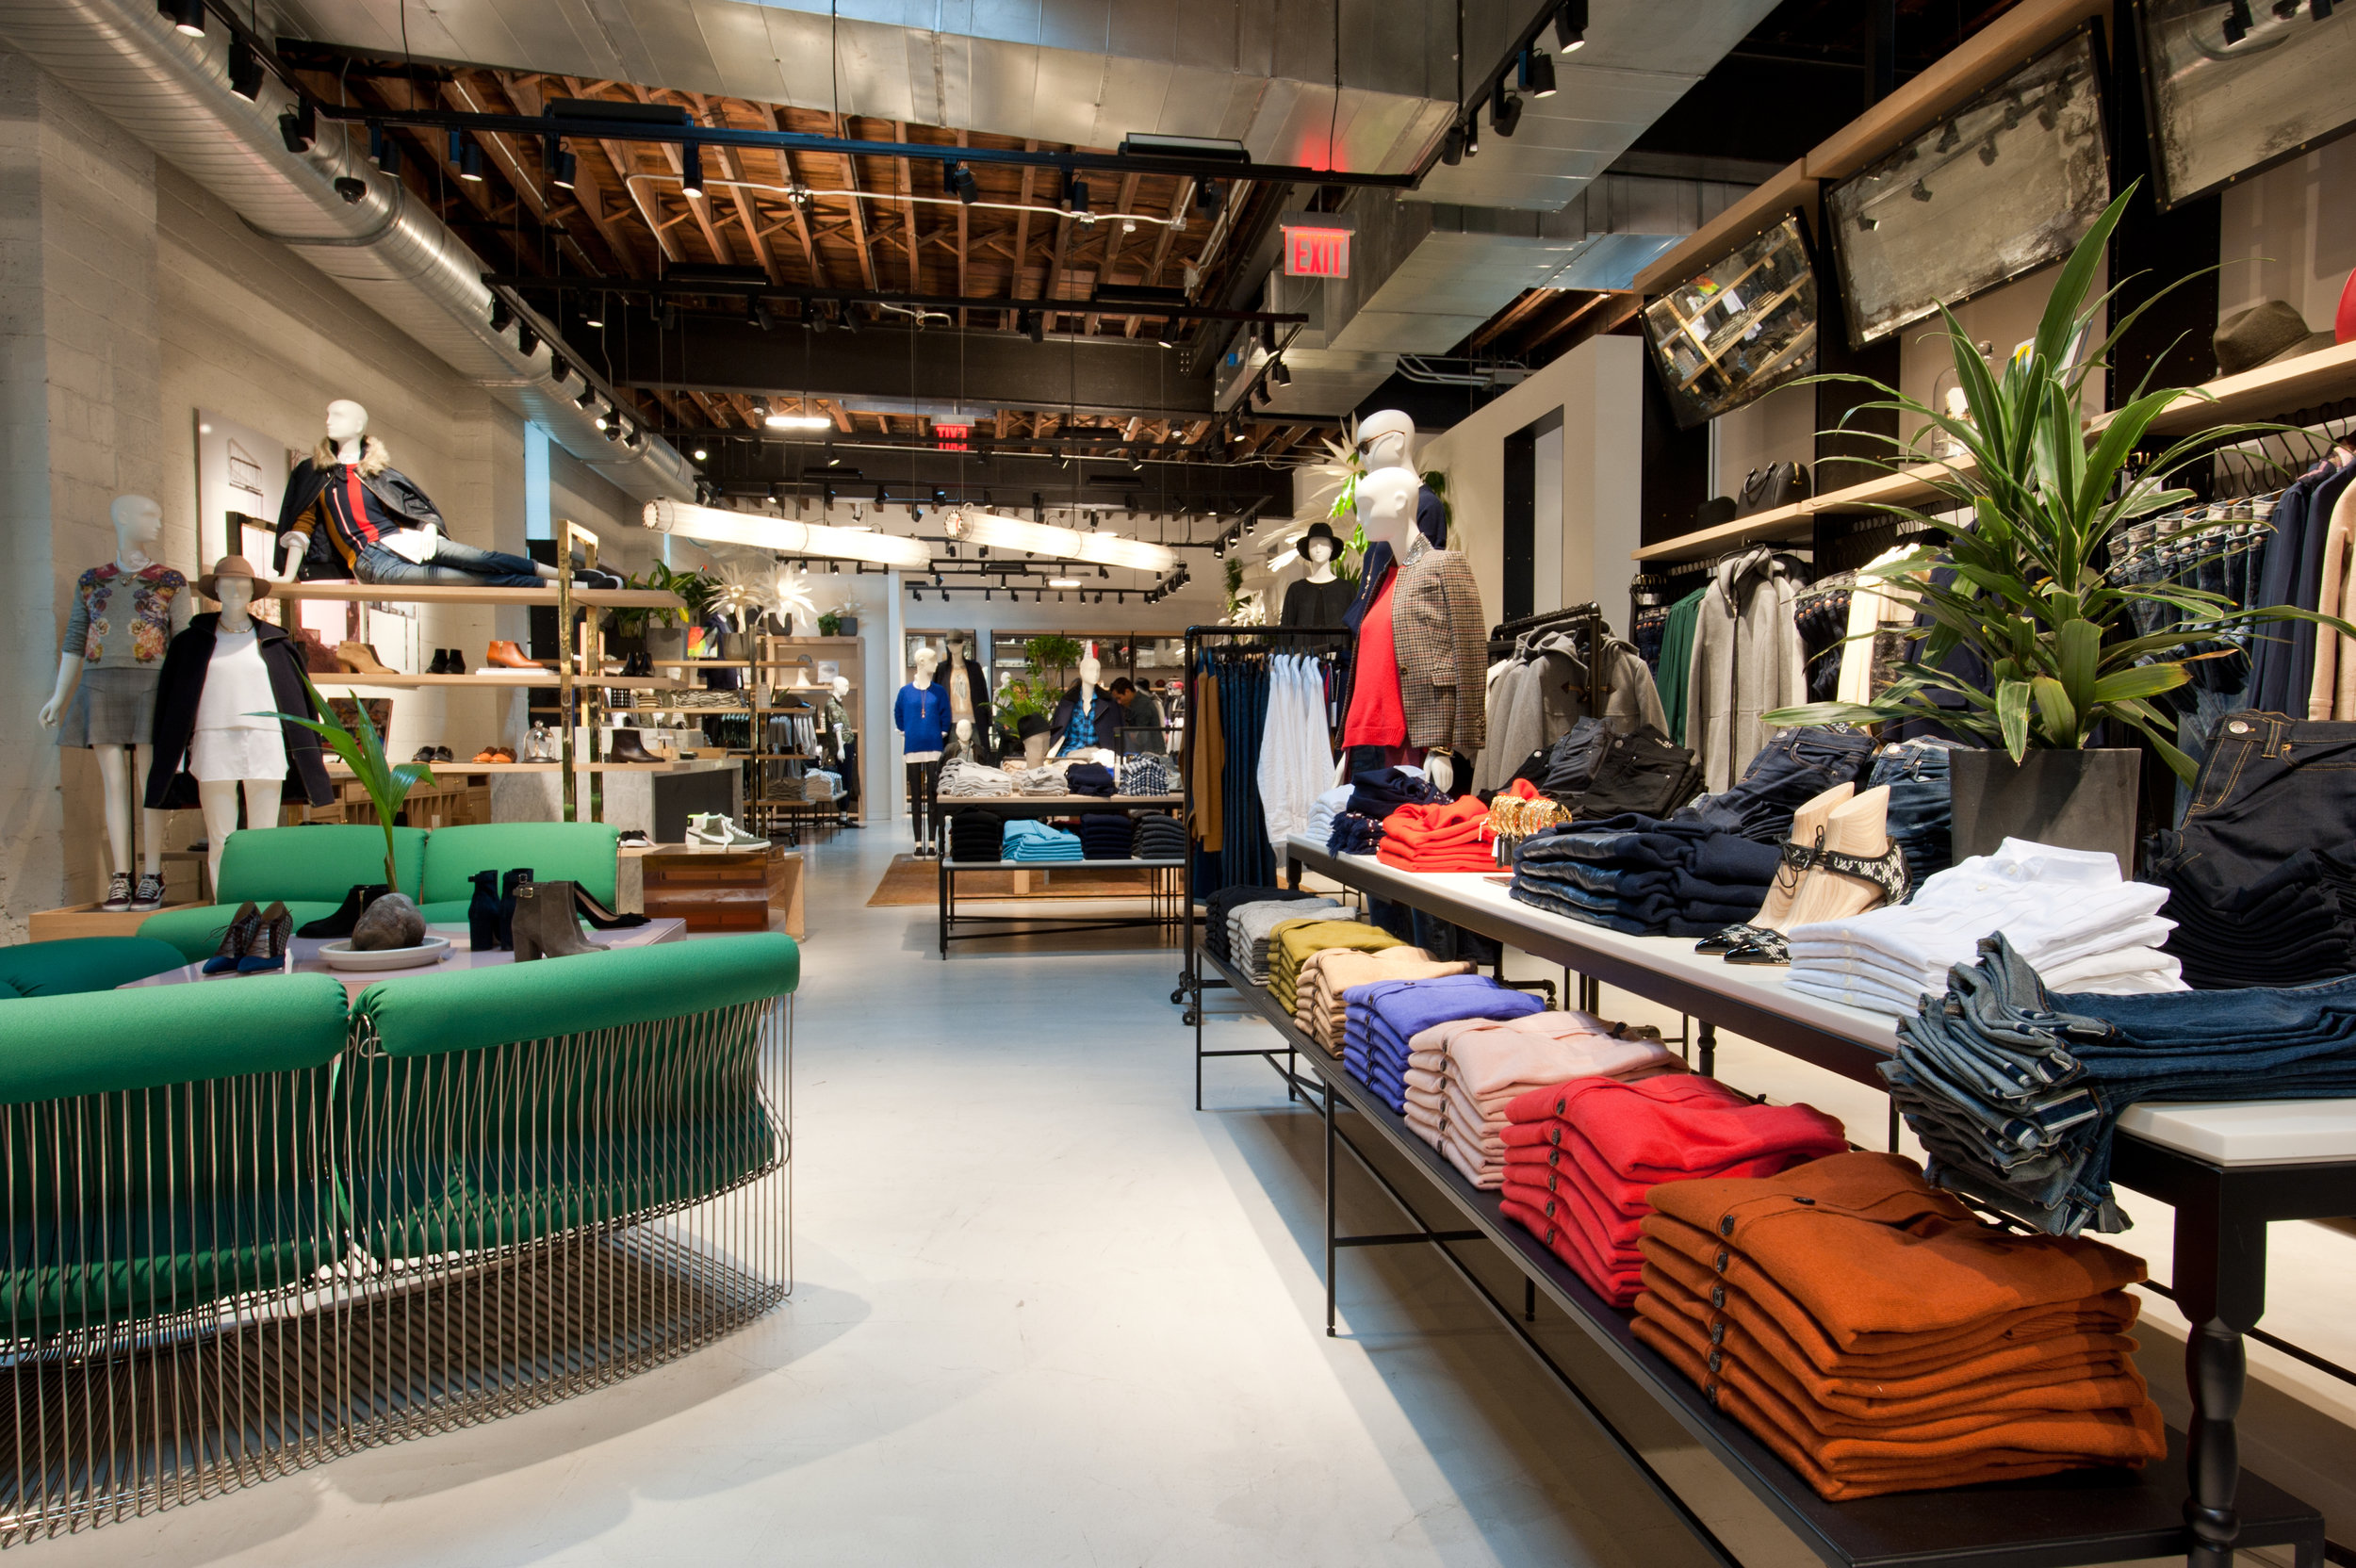 Mannequins in smart casual outfits, a shoe display, green couches, and folded shirts for customers to peruse in the Williamsburg location of J Crew. MEP by New York firm, 2L Engineering.